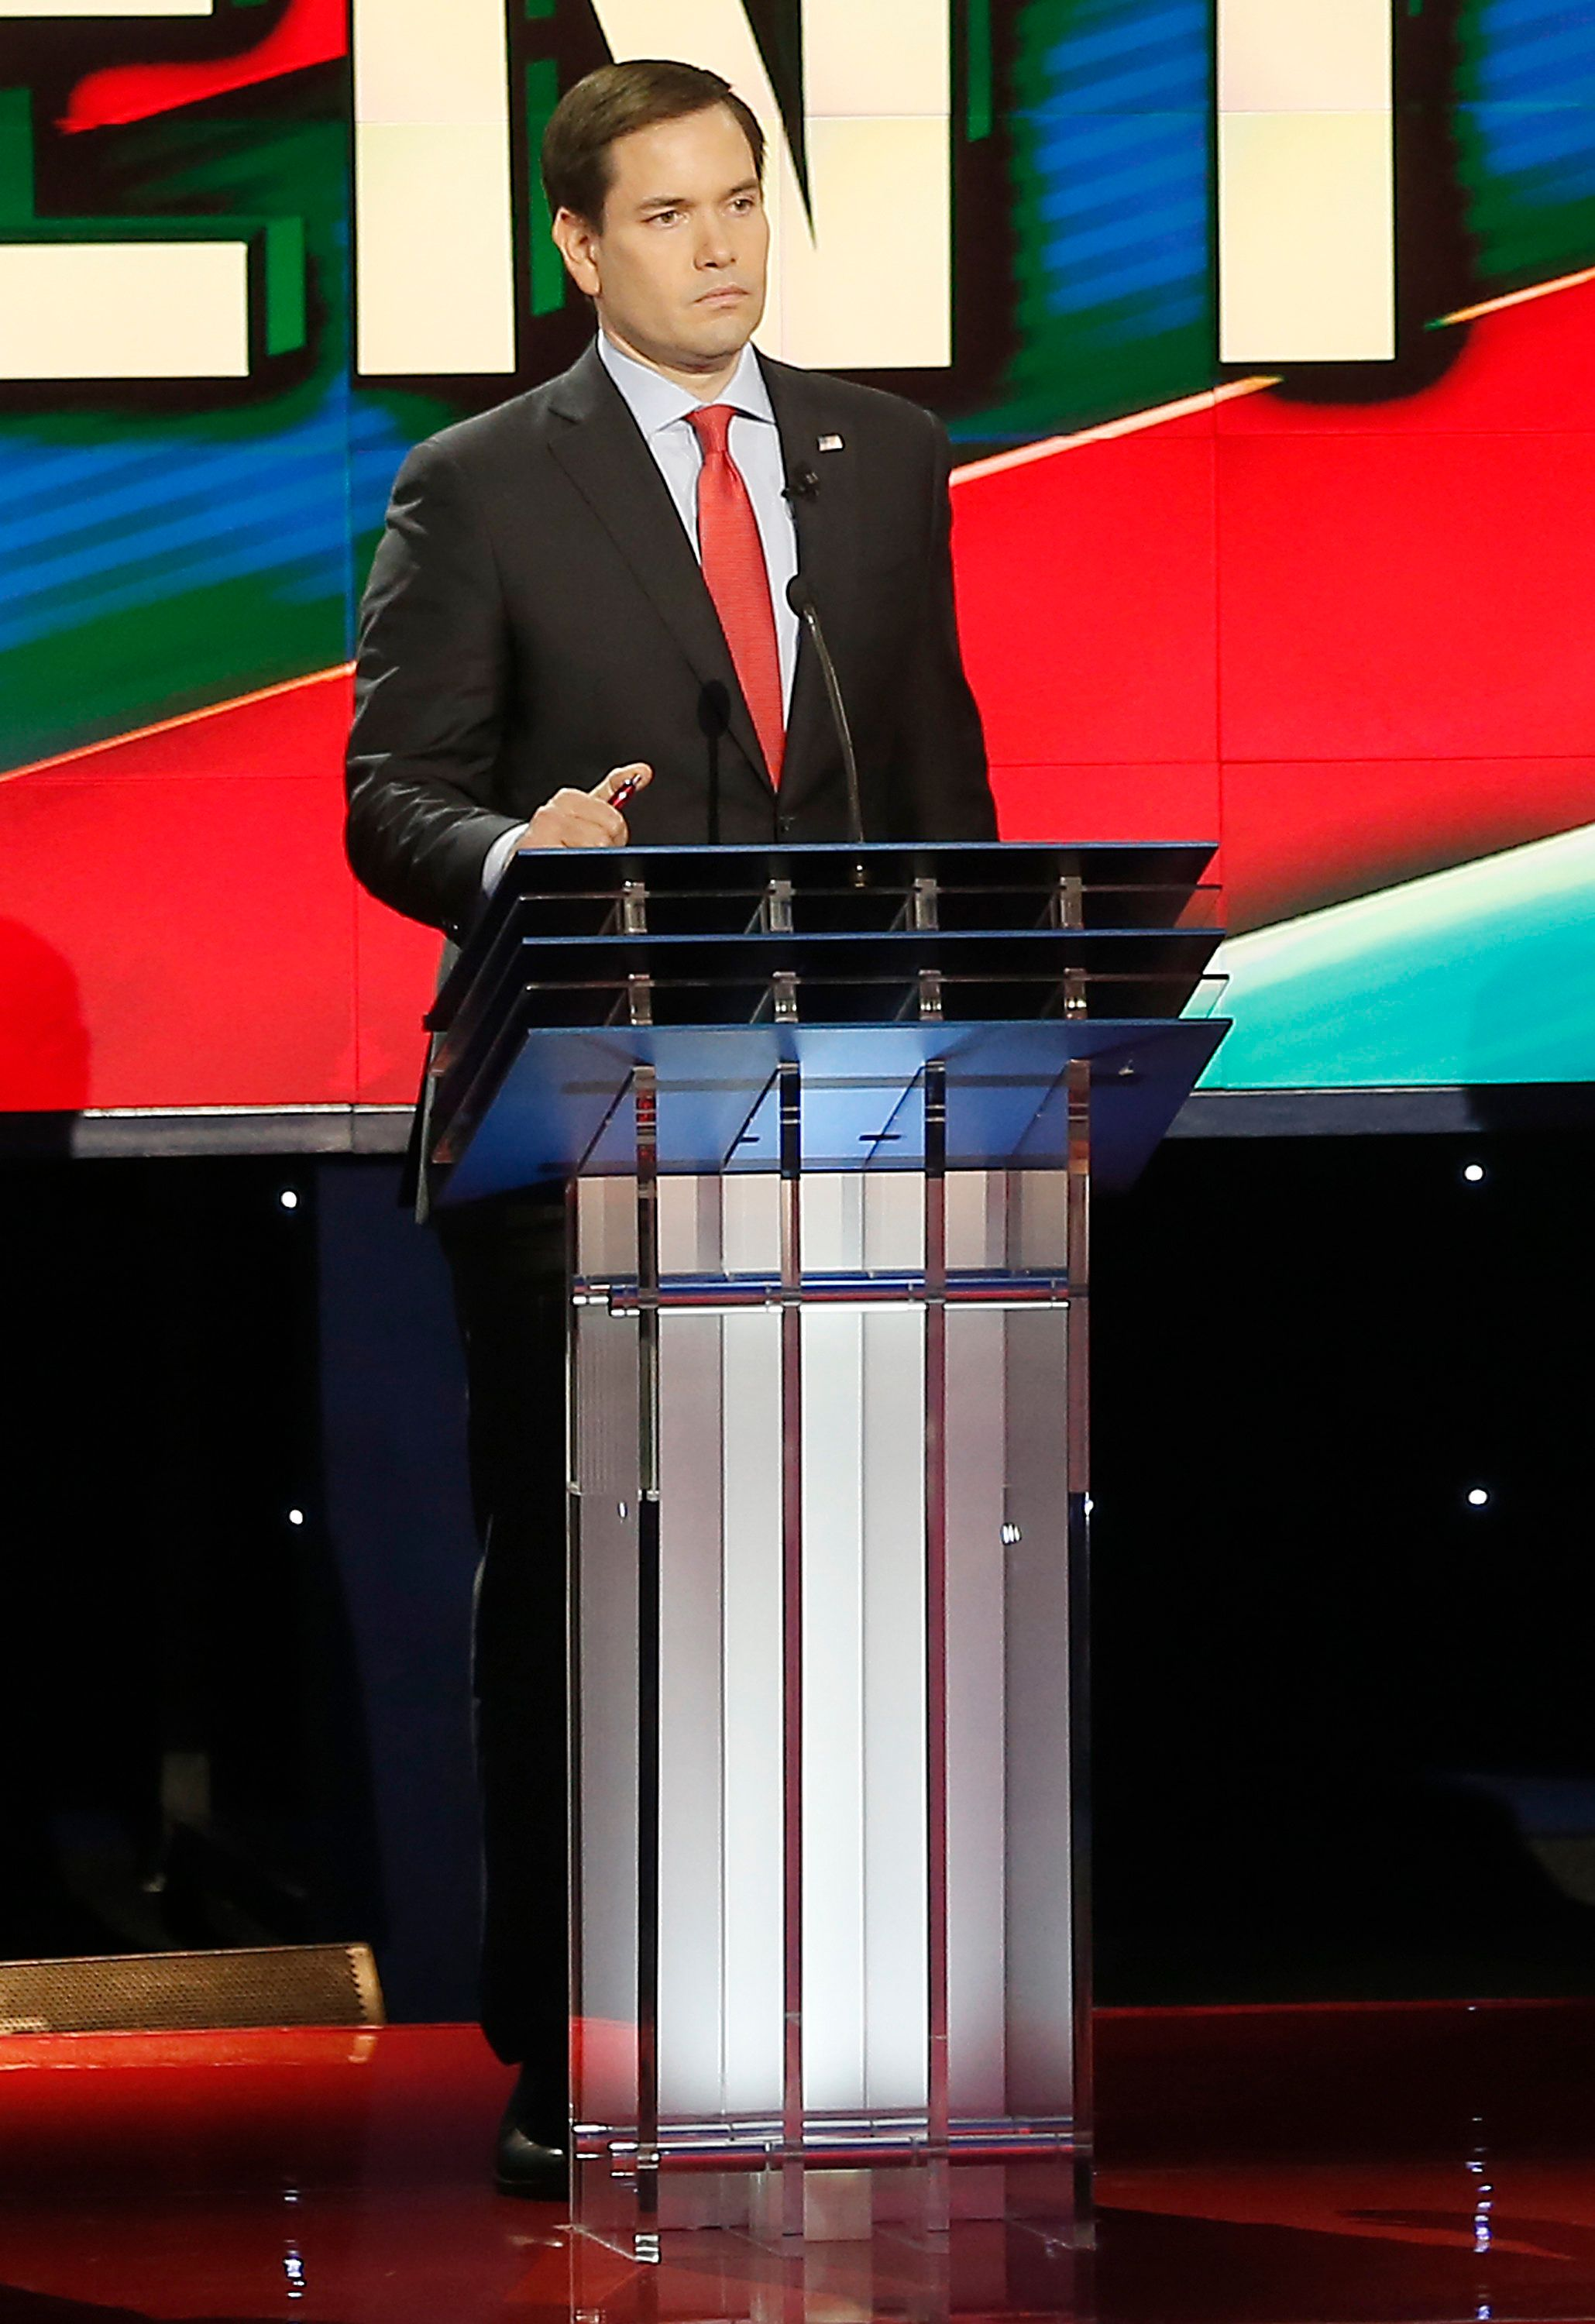 US Republican Presidential Candidate Marco Rubio participates in the Republican Presidential Debate at the University of Houston in Houston, Texas on February 25, 2016. / AFP / Thomas B. Shea        (Photo credit should read THOMAS B. SHEA/AFP/Getty Images)